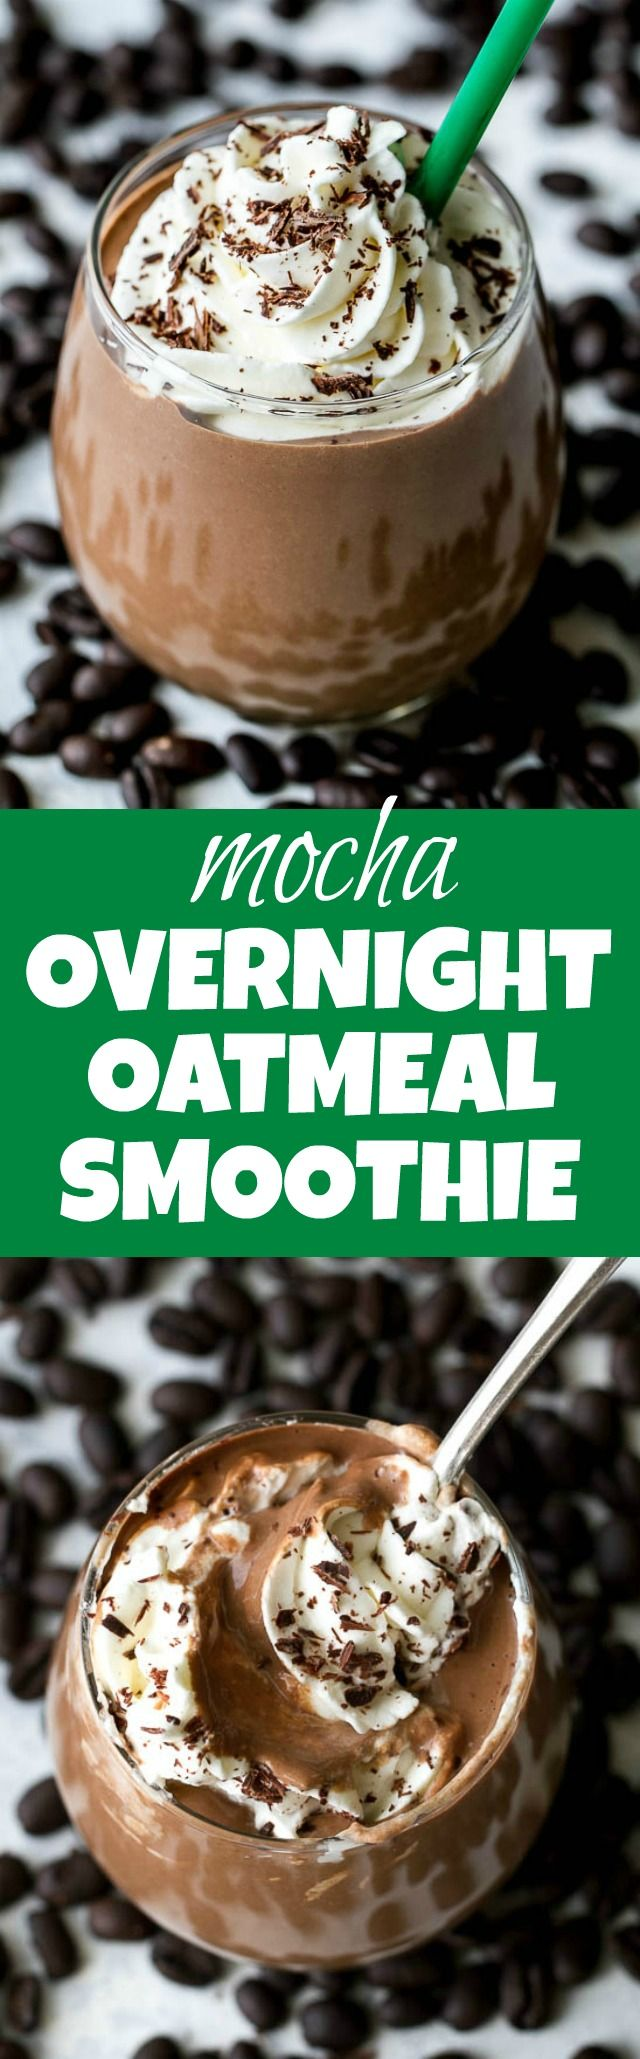 Best 25+ Mocha smoothie ideas on Pinterest | Shake shake, Healthy ...